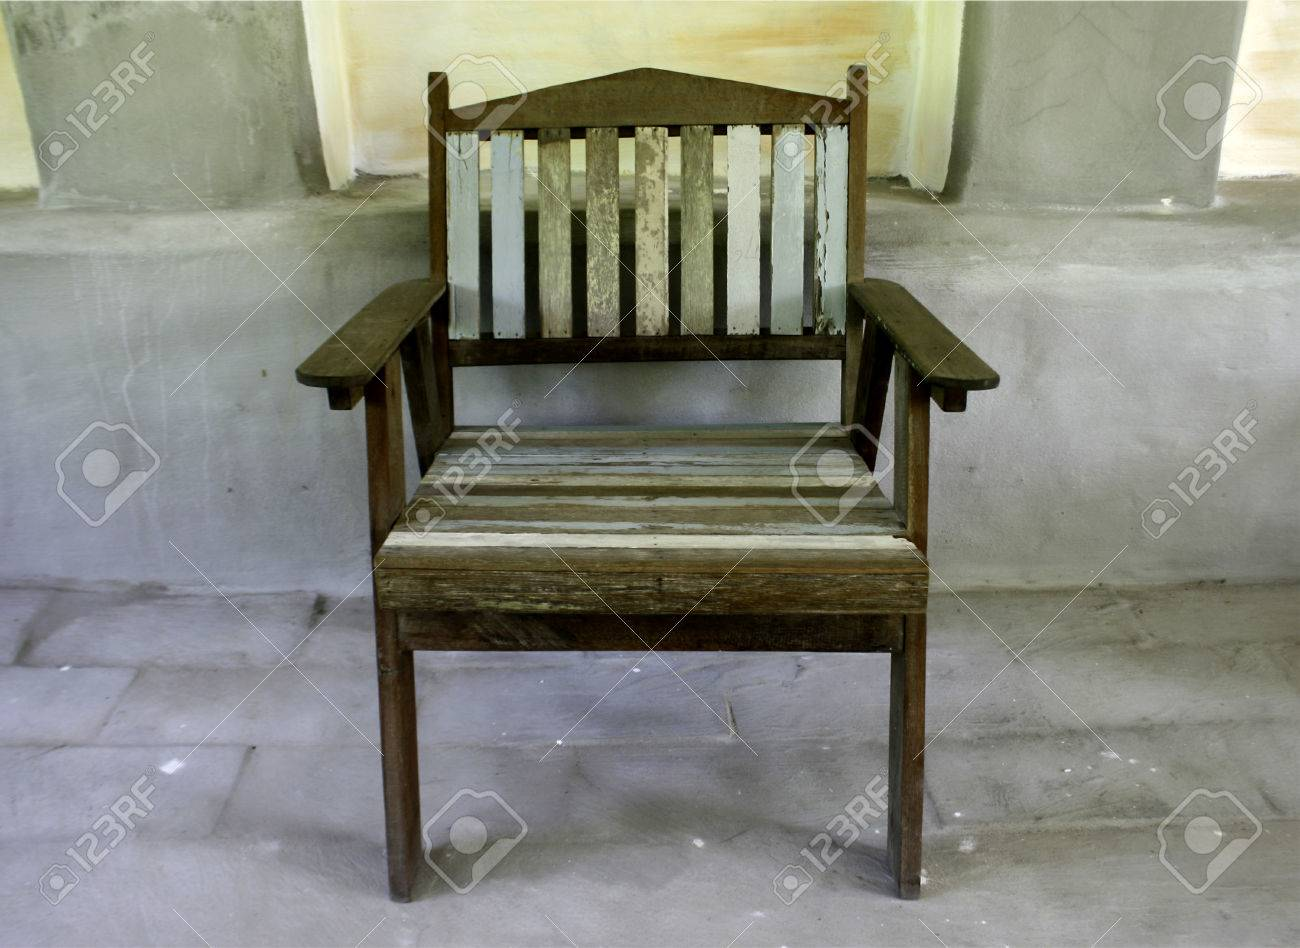 40593776-old-style-wood-chair-Stock-Photo